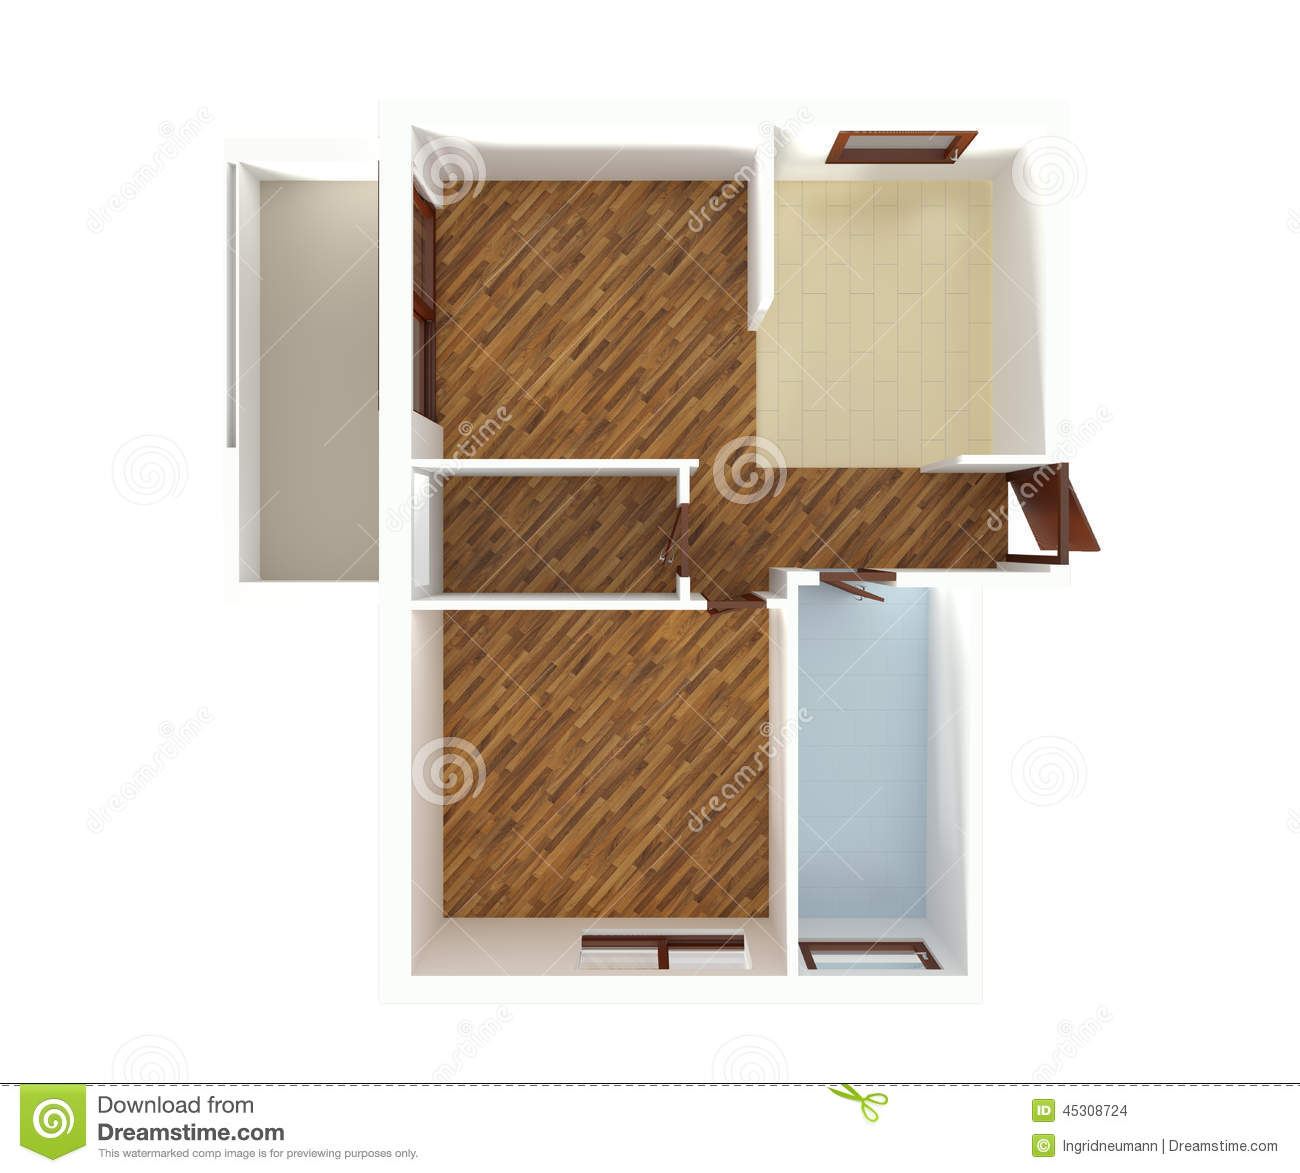 House plan top view interior design stock illustration for Bathroom designs top view